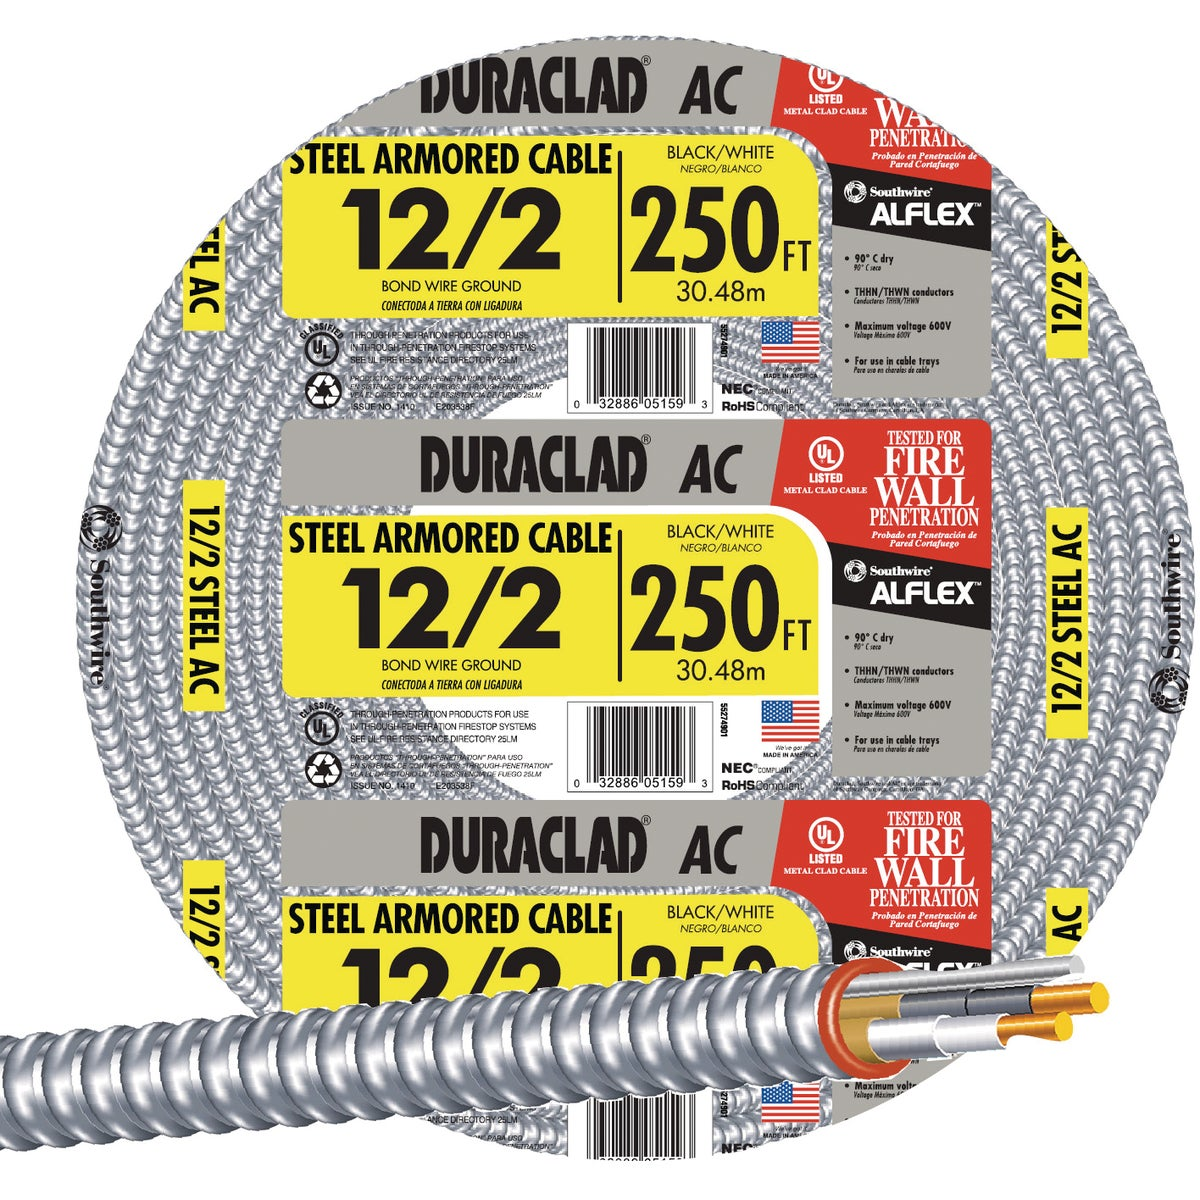 250' 12/2 Stl Armr Cable